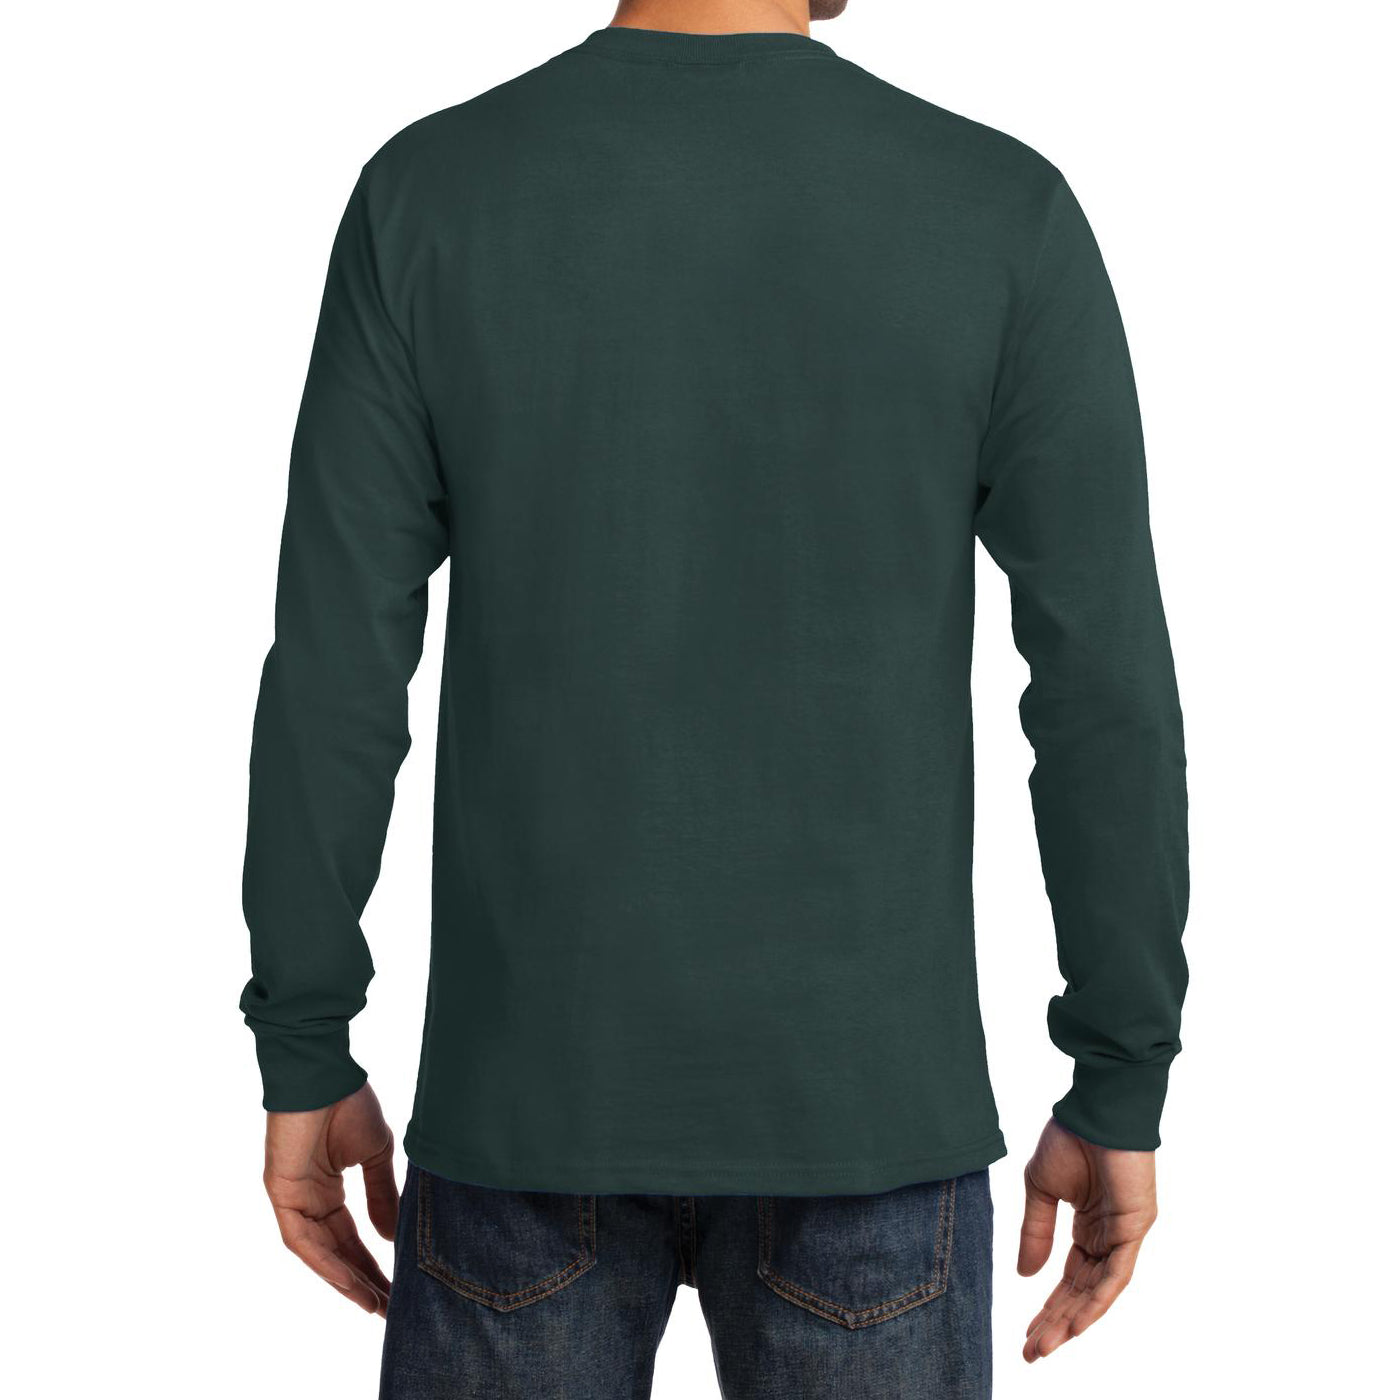 Men's Long Sleeve Essential Tee - Dark Green - Back